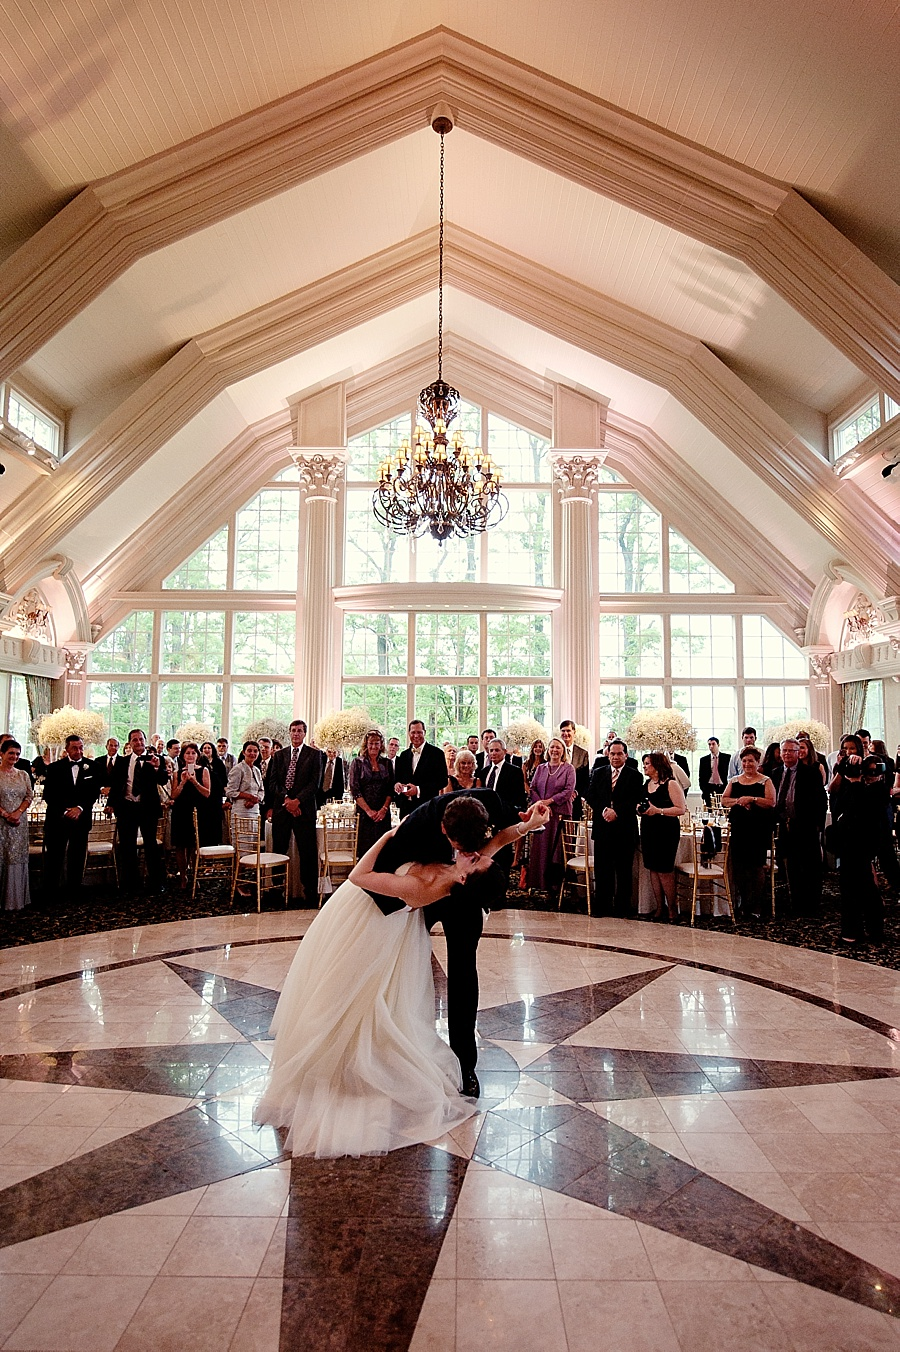 NJ_WEDDING_VENUE_ASHFORD_ESTATE_037.jpg